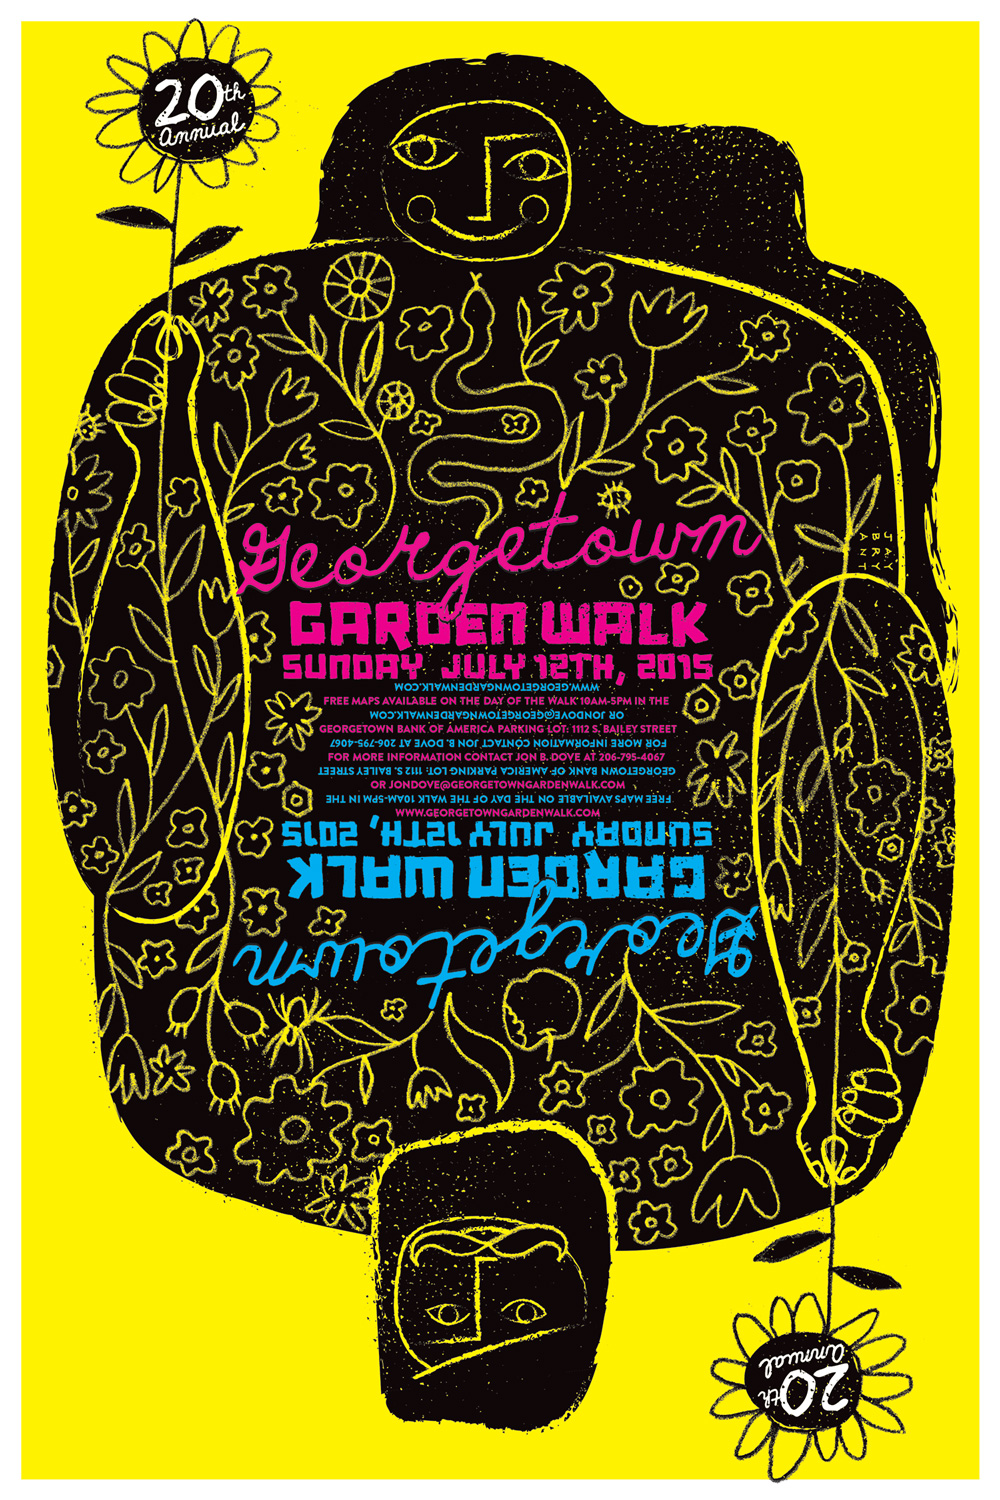 Last year's poster commemorated the Georgetown Garden Walk's 20th year.  Art by Jay Bryant, Purpose & Co.